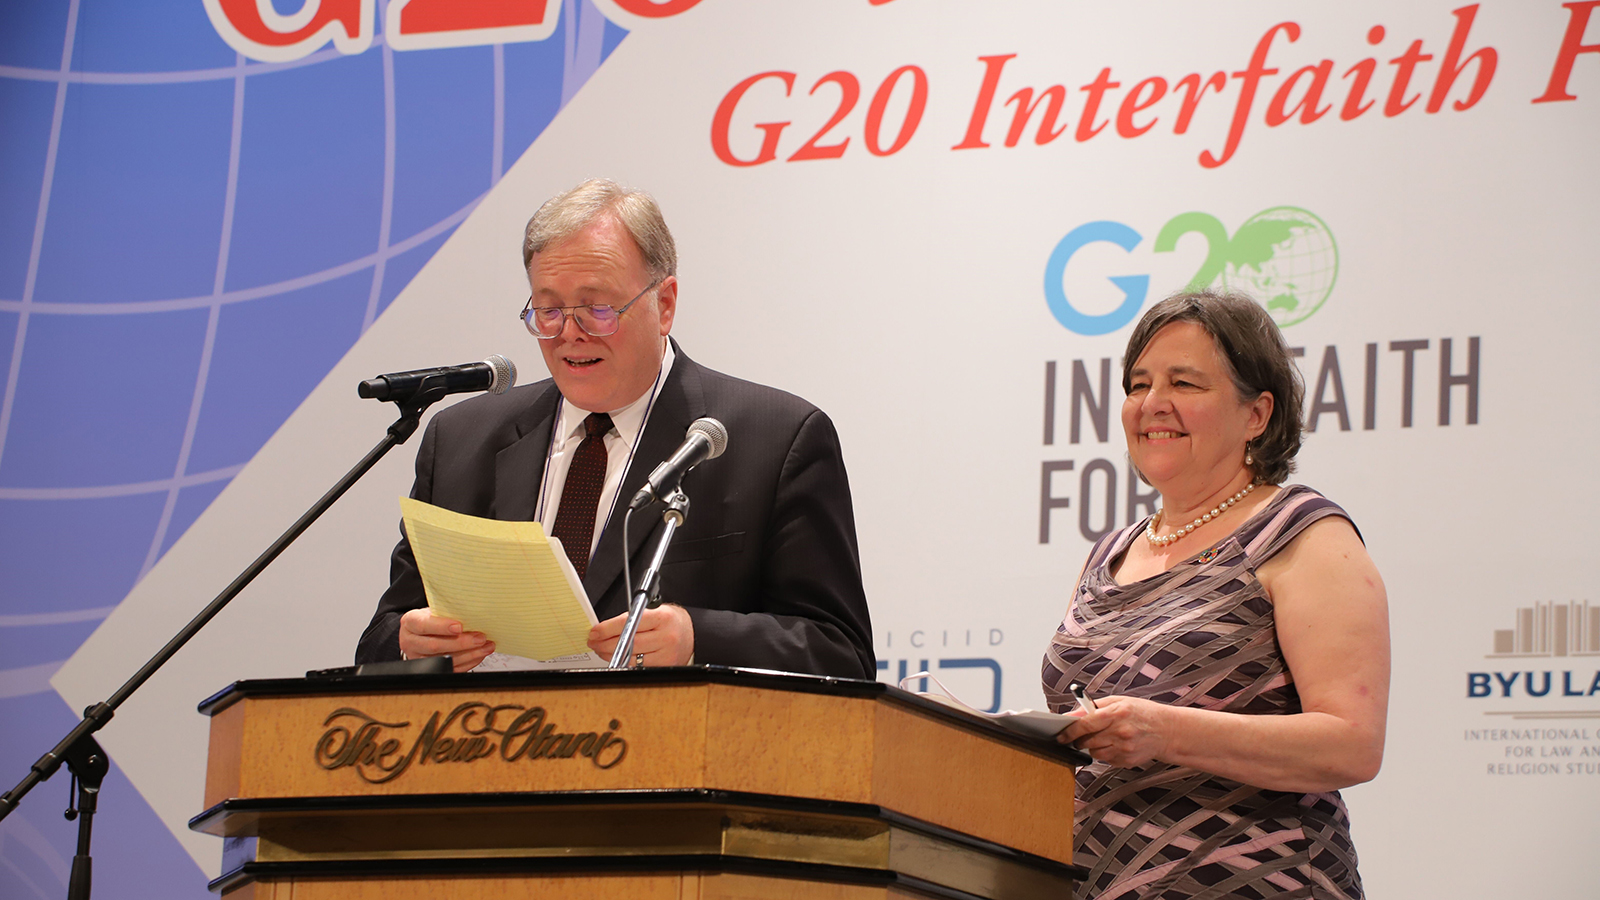 Cole Durham and Katherine Marshall at the 2019 G20 Interfaith Forum in Japan